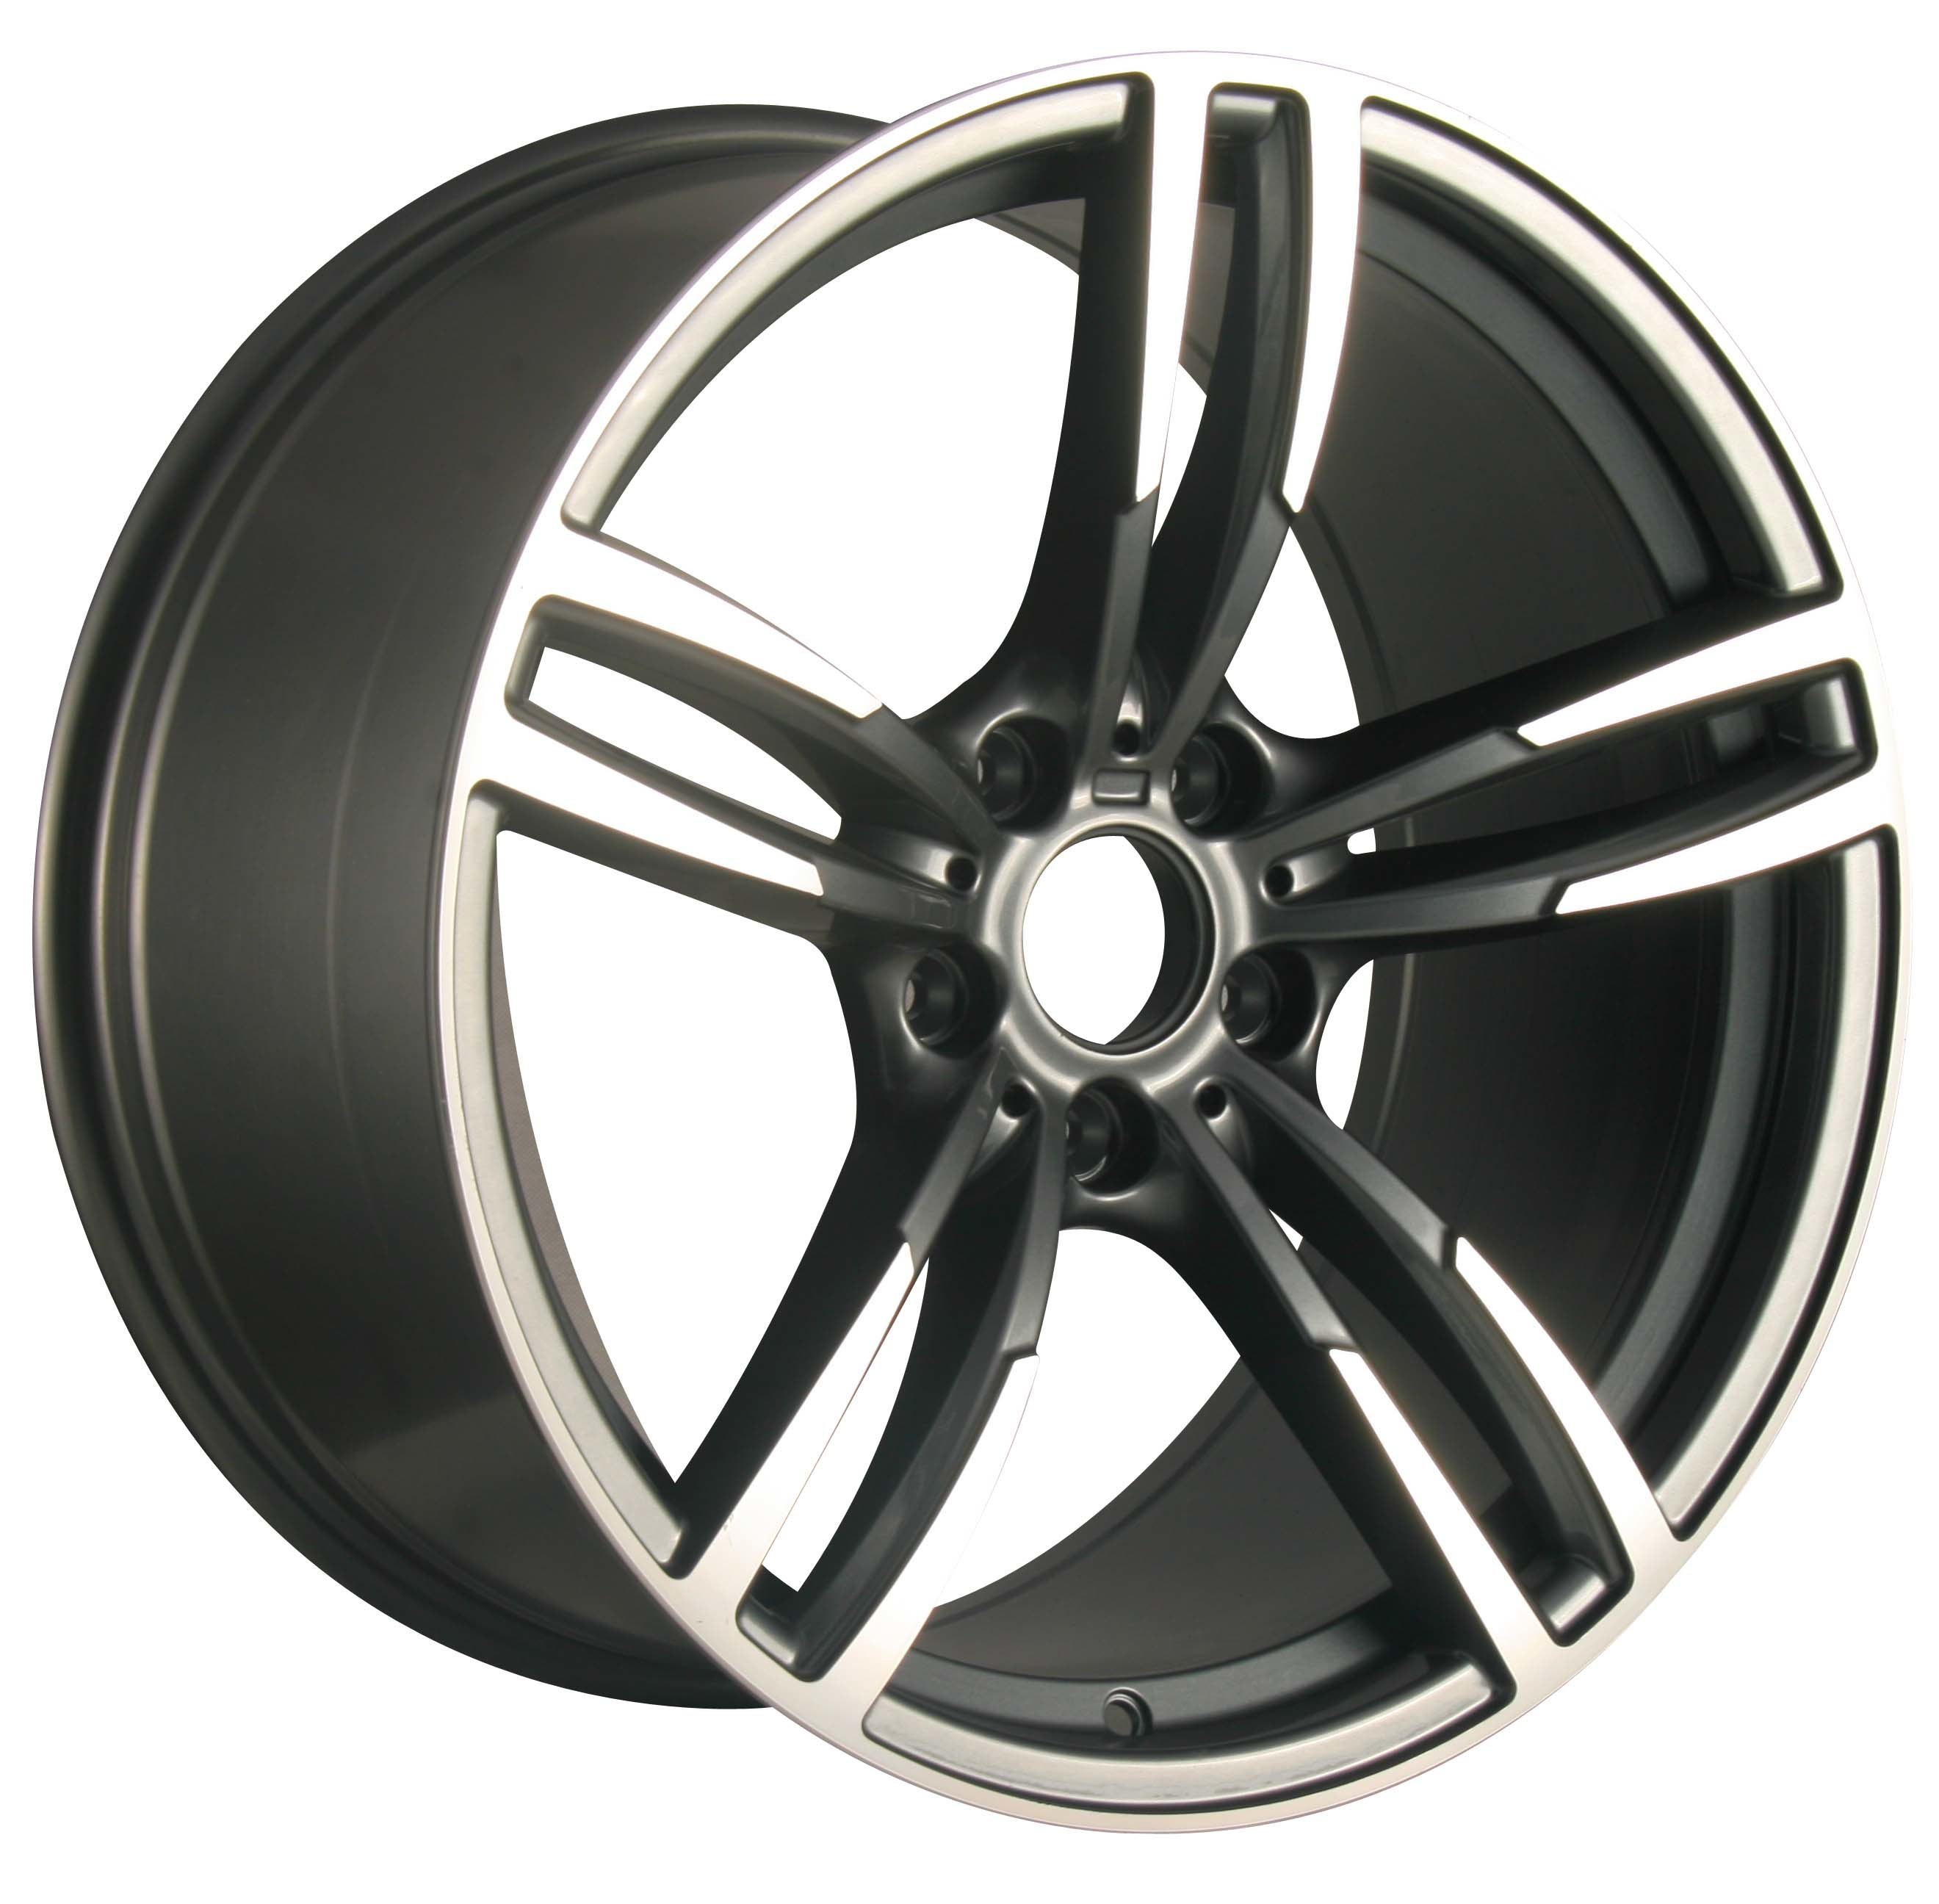 18inch and 19inch Alloy Wheel Replica Wheel for Bmw′s